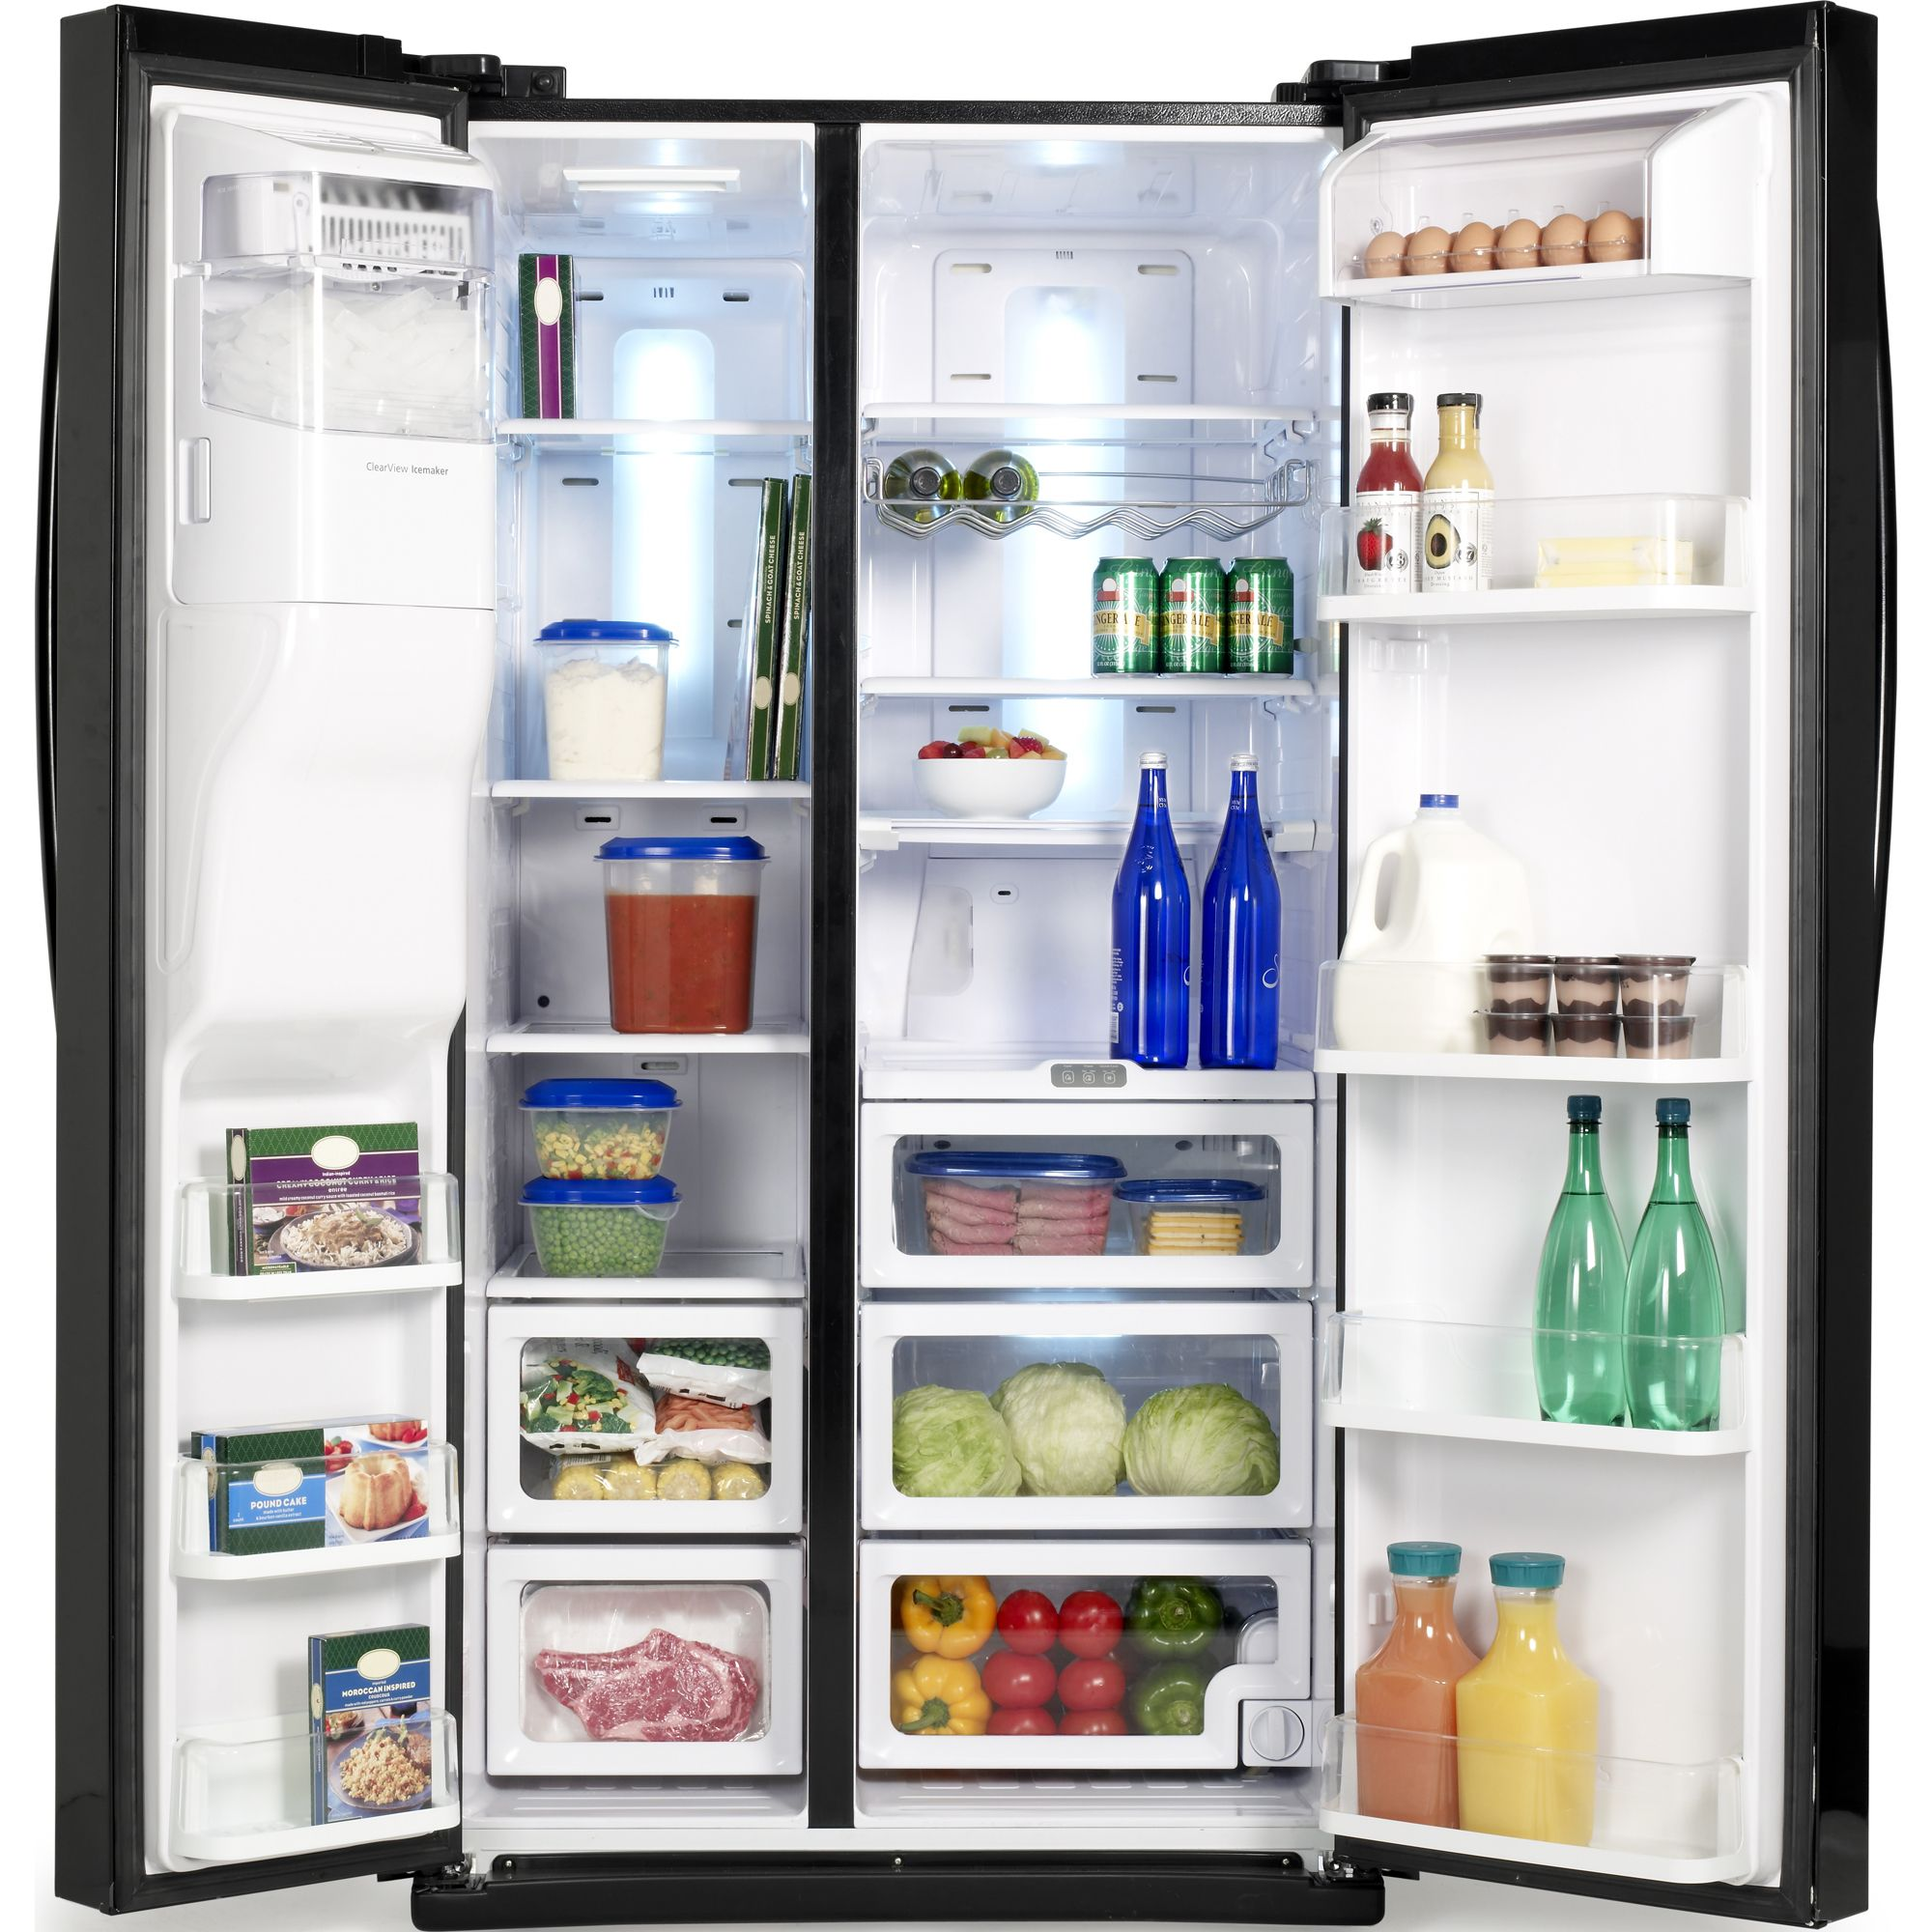 Samsung 25.5 cu. ft. Side-by-Side Refrigerator-Black